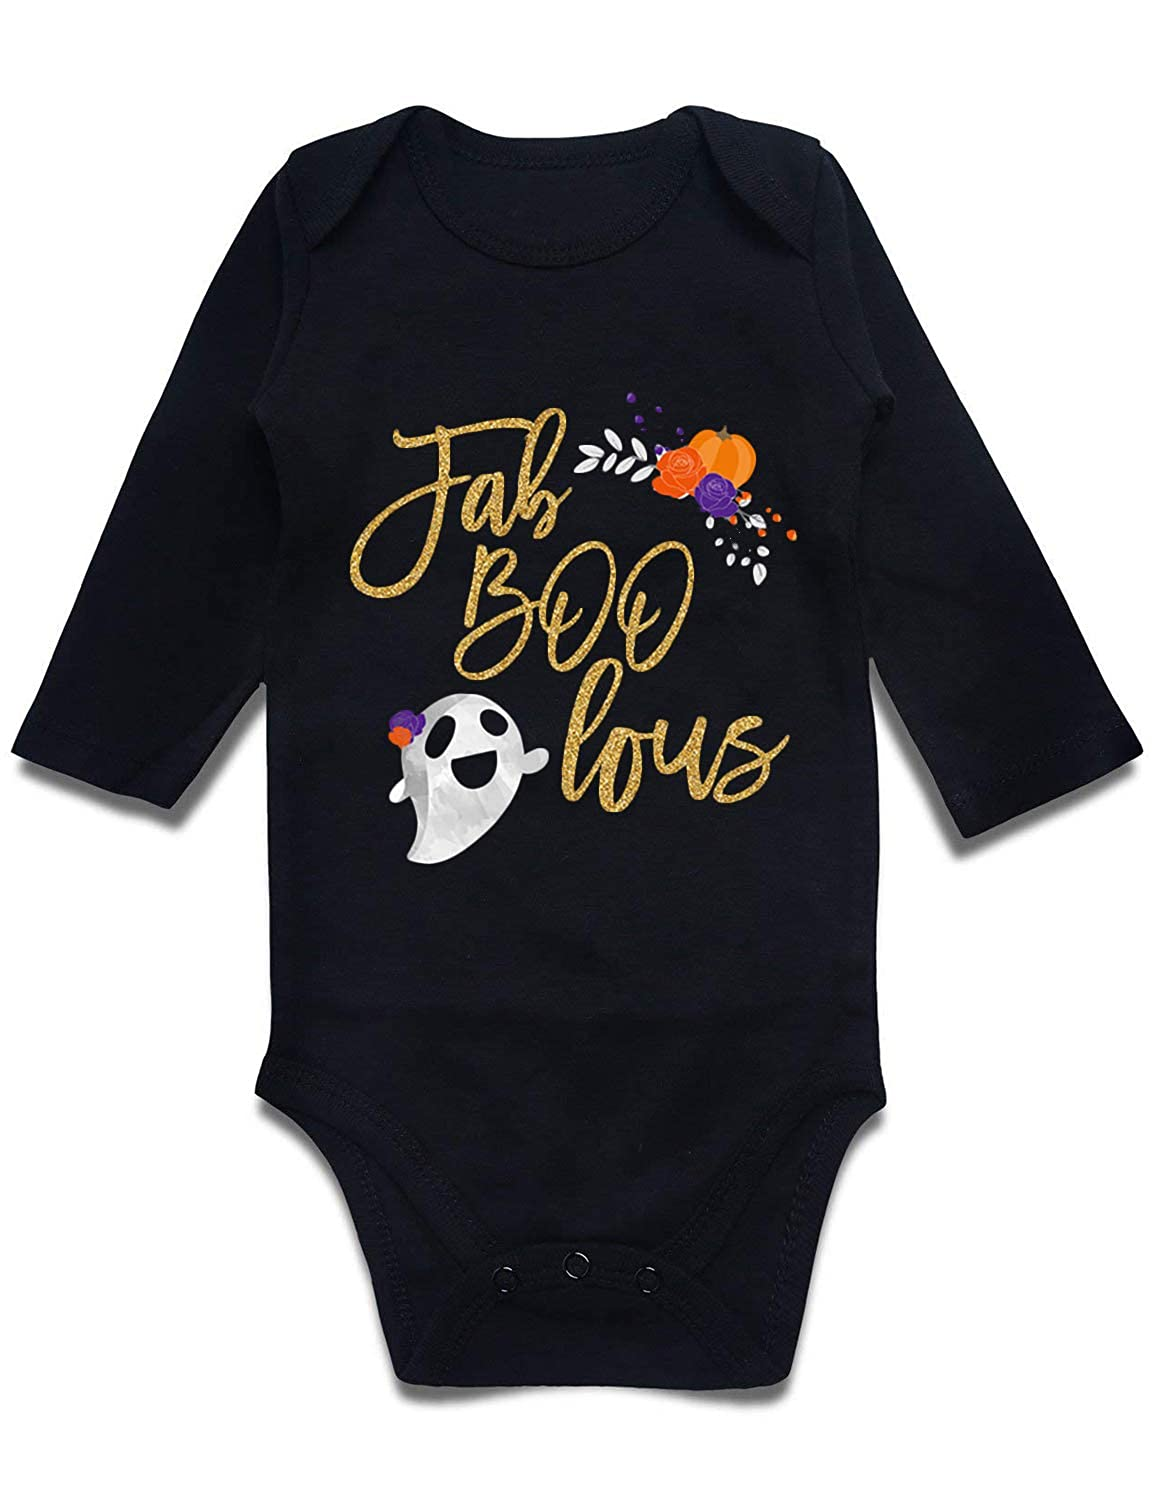 Cutemefy Newborn Infant Baby Boys Girls Romper Bodysuit Short Sleeve Outfit Jumpsuit (Size 0-18 Months) CQJTZCH56IUPO